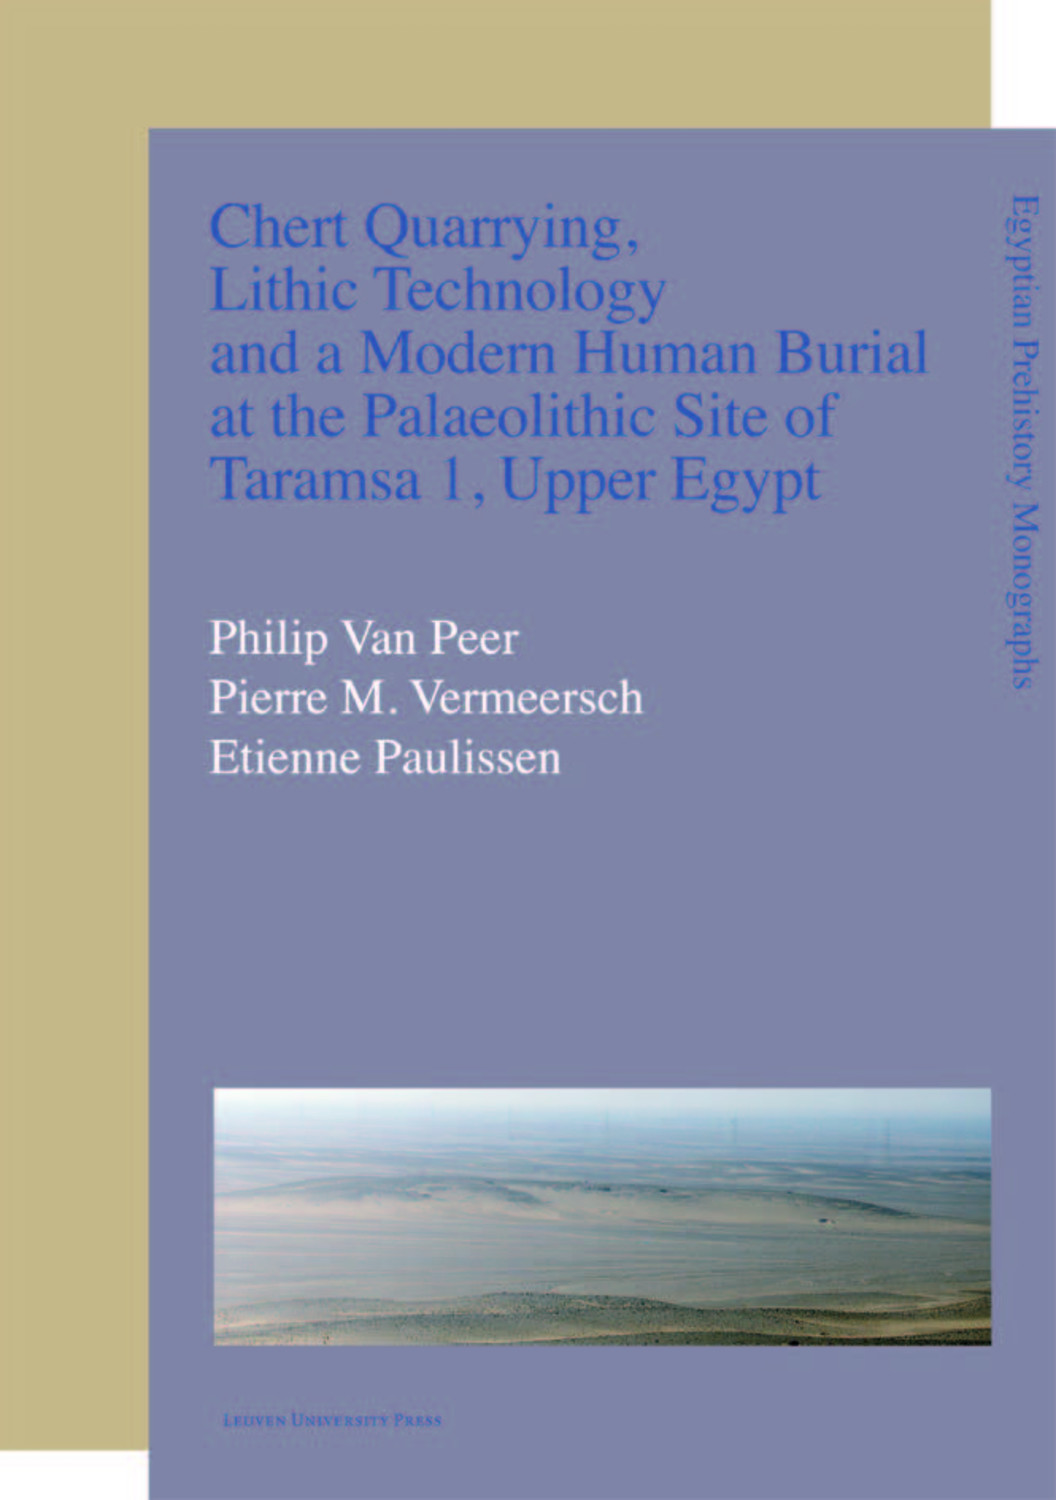 Chert Quarrying, Lithic Technology, and a Modern Human Burial at the Palaeolithic Site of Taramsa 1, Upper Egypt